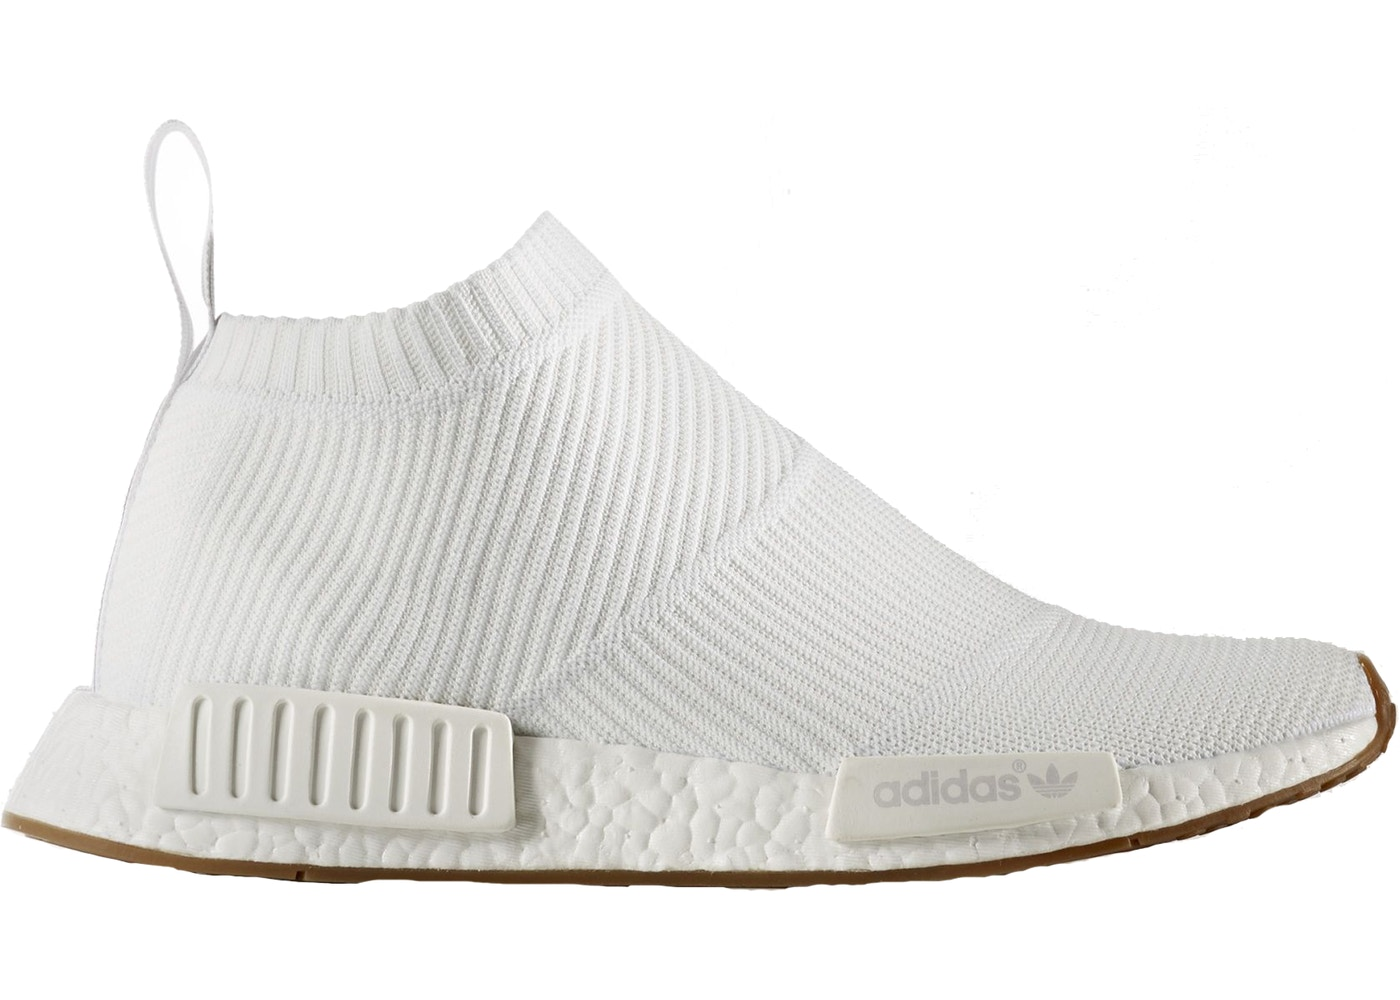 adidas nmd city sock prezzo